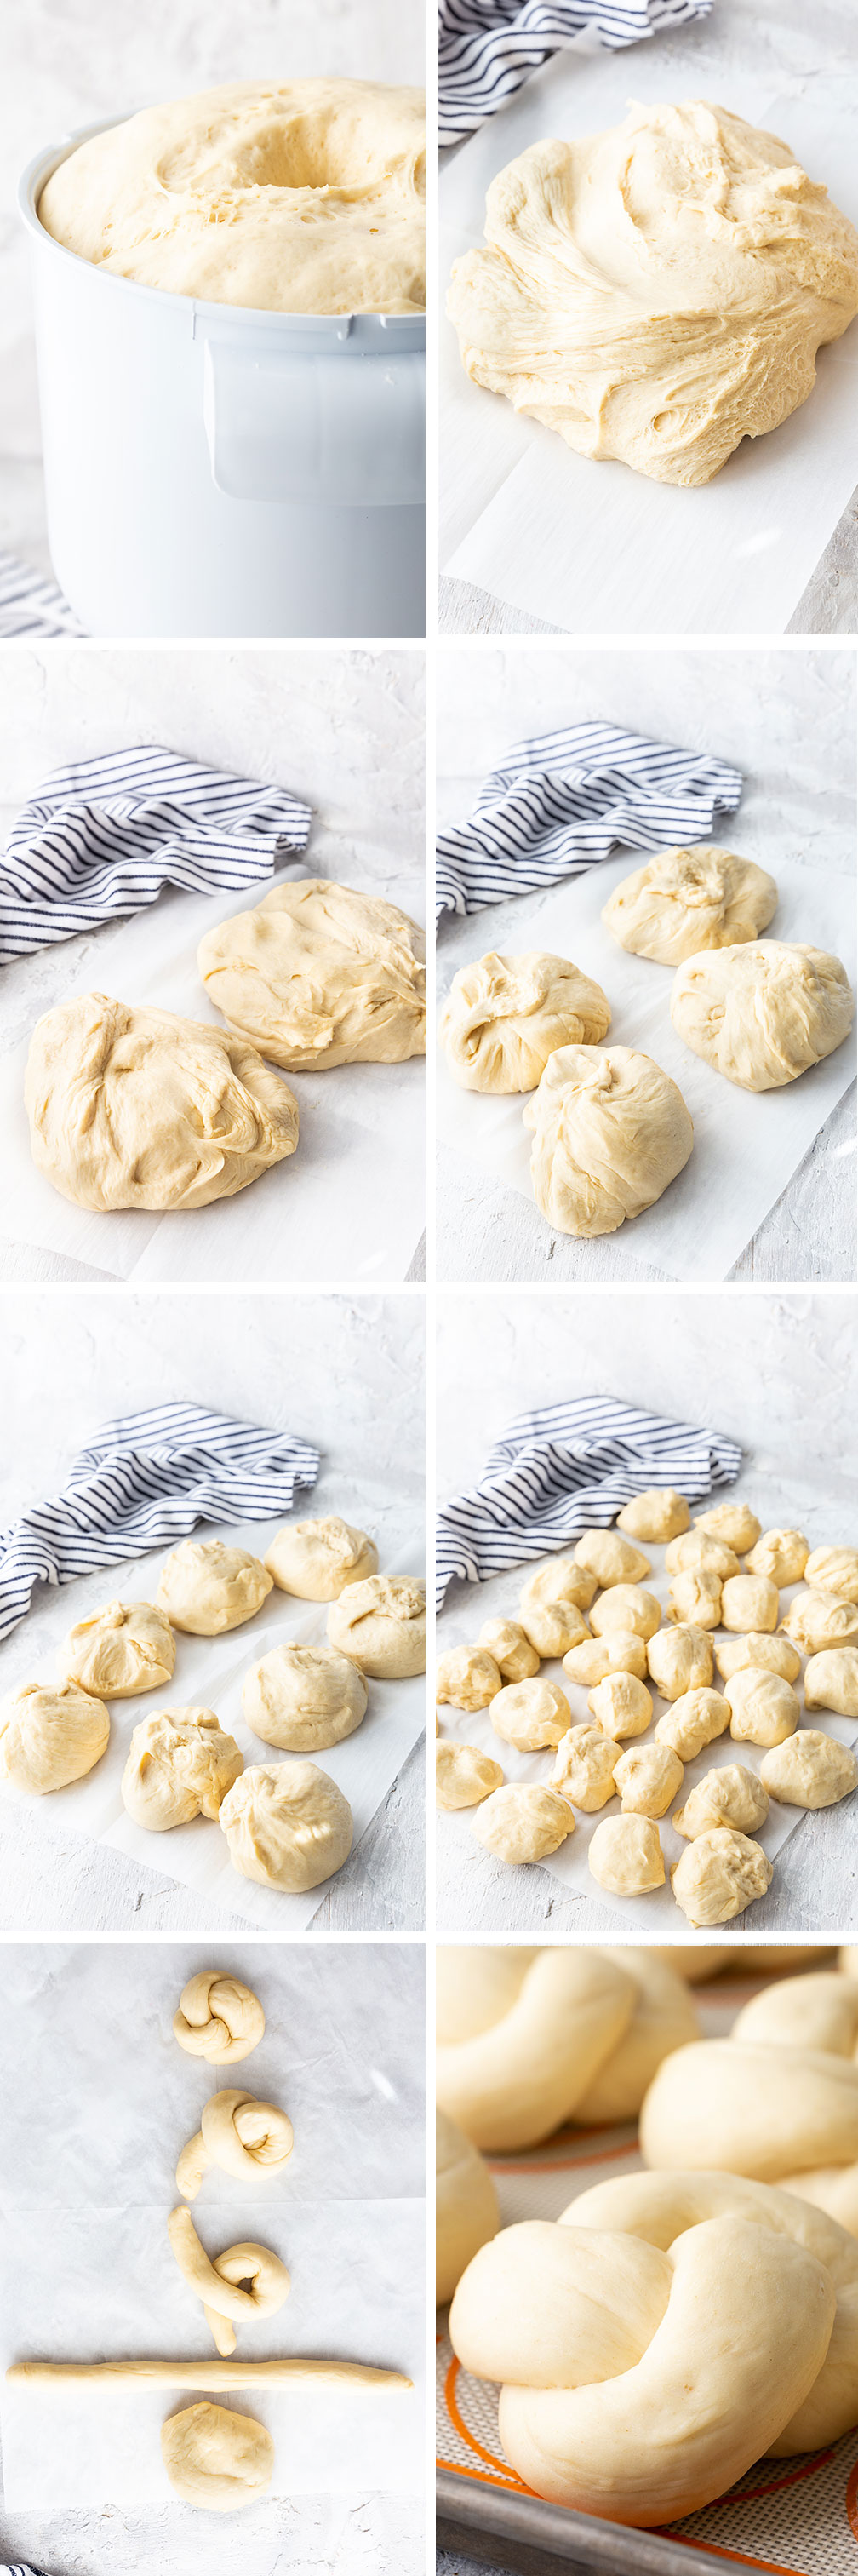 How to make the dinner rolls